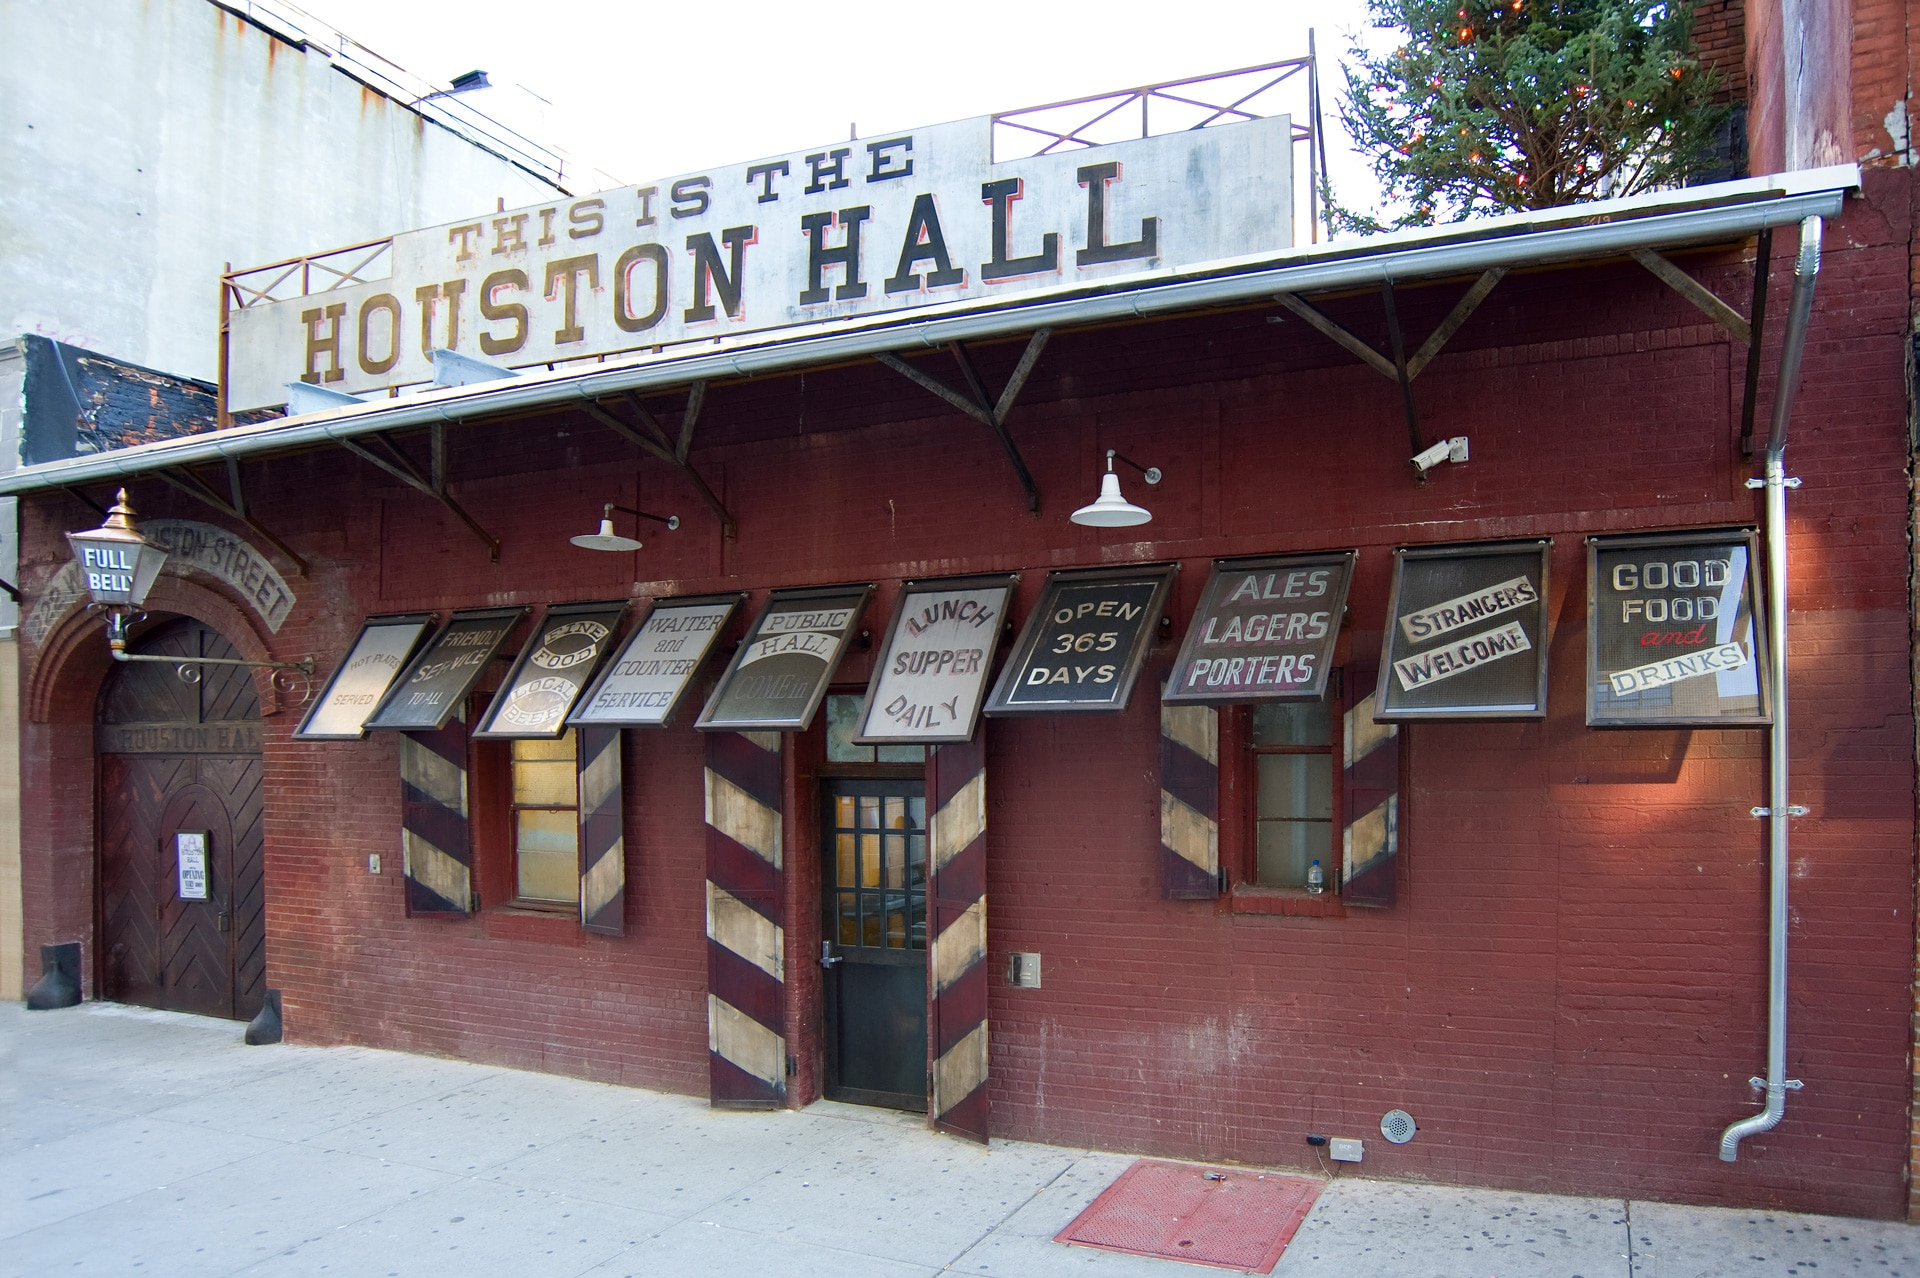 Houston Hall Beer Hall